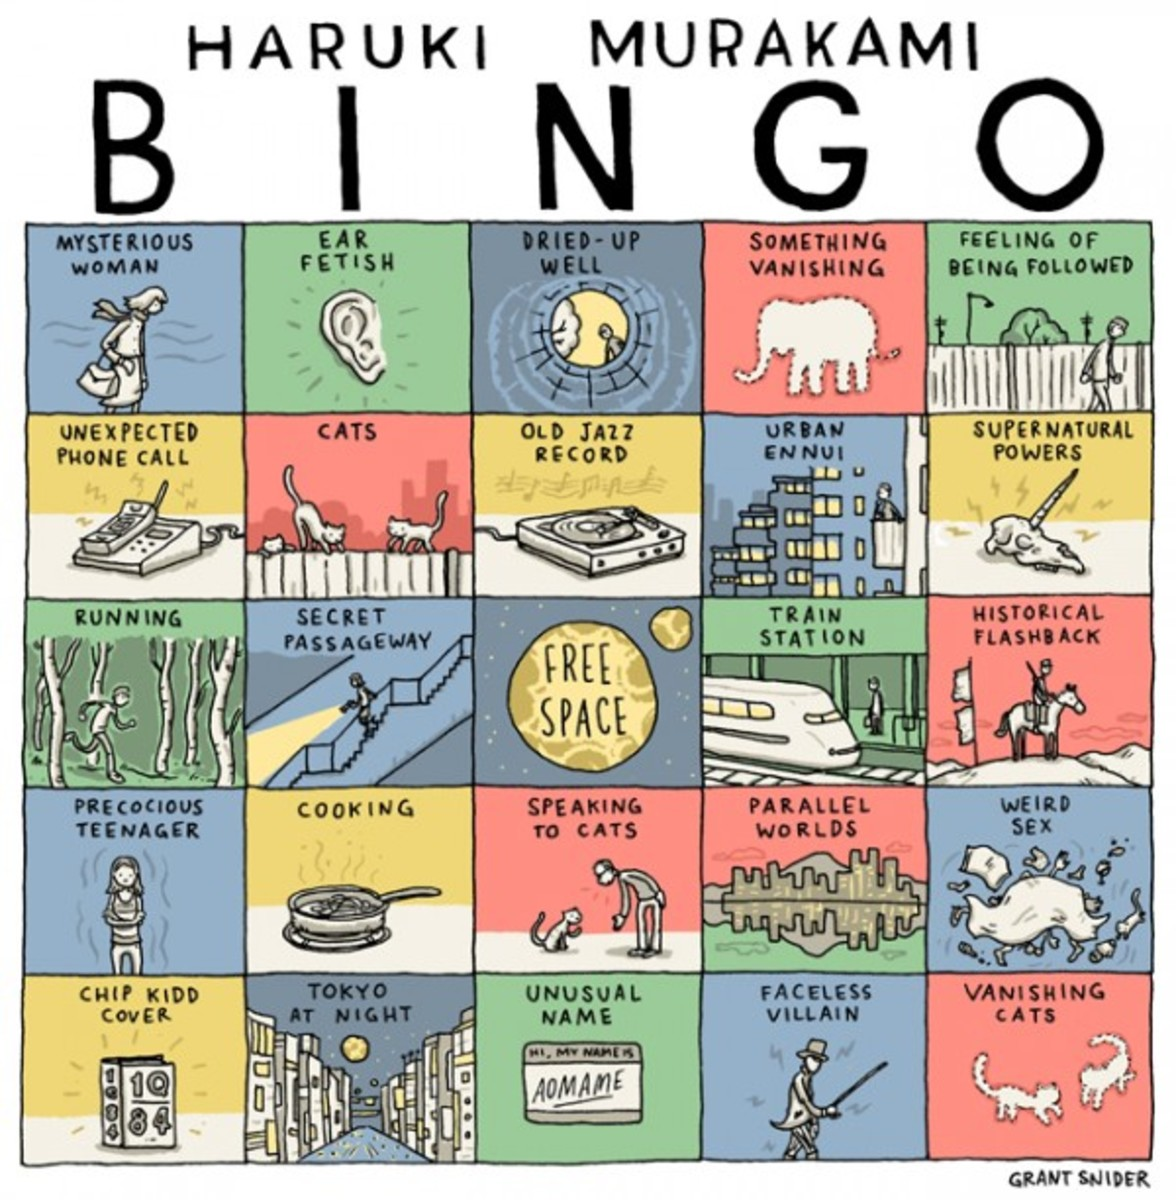 Invariable Murakami motifs can fit on one bingo card.